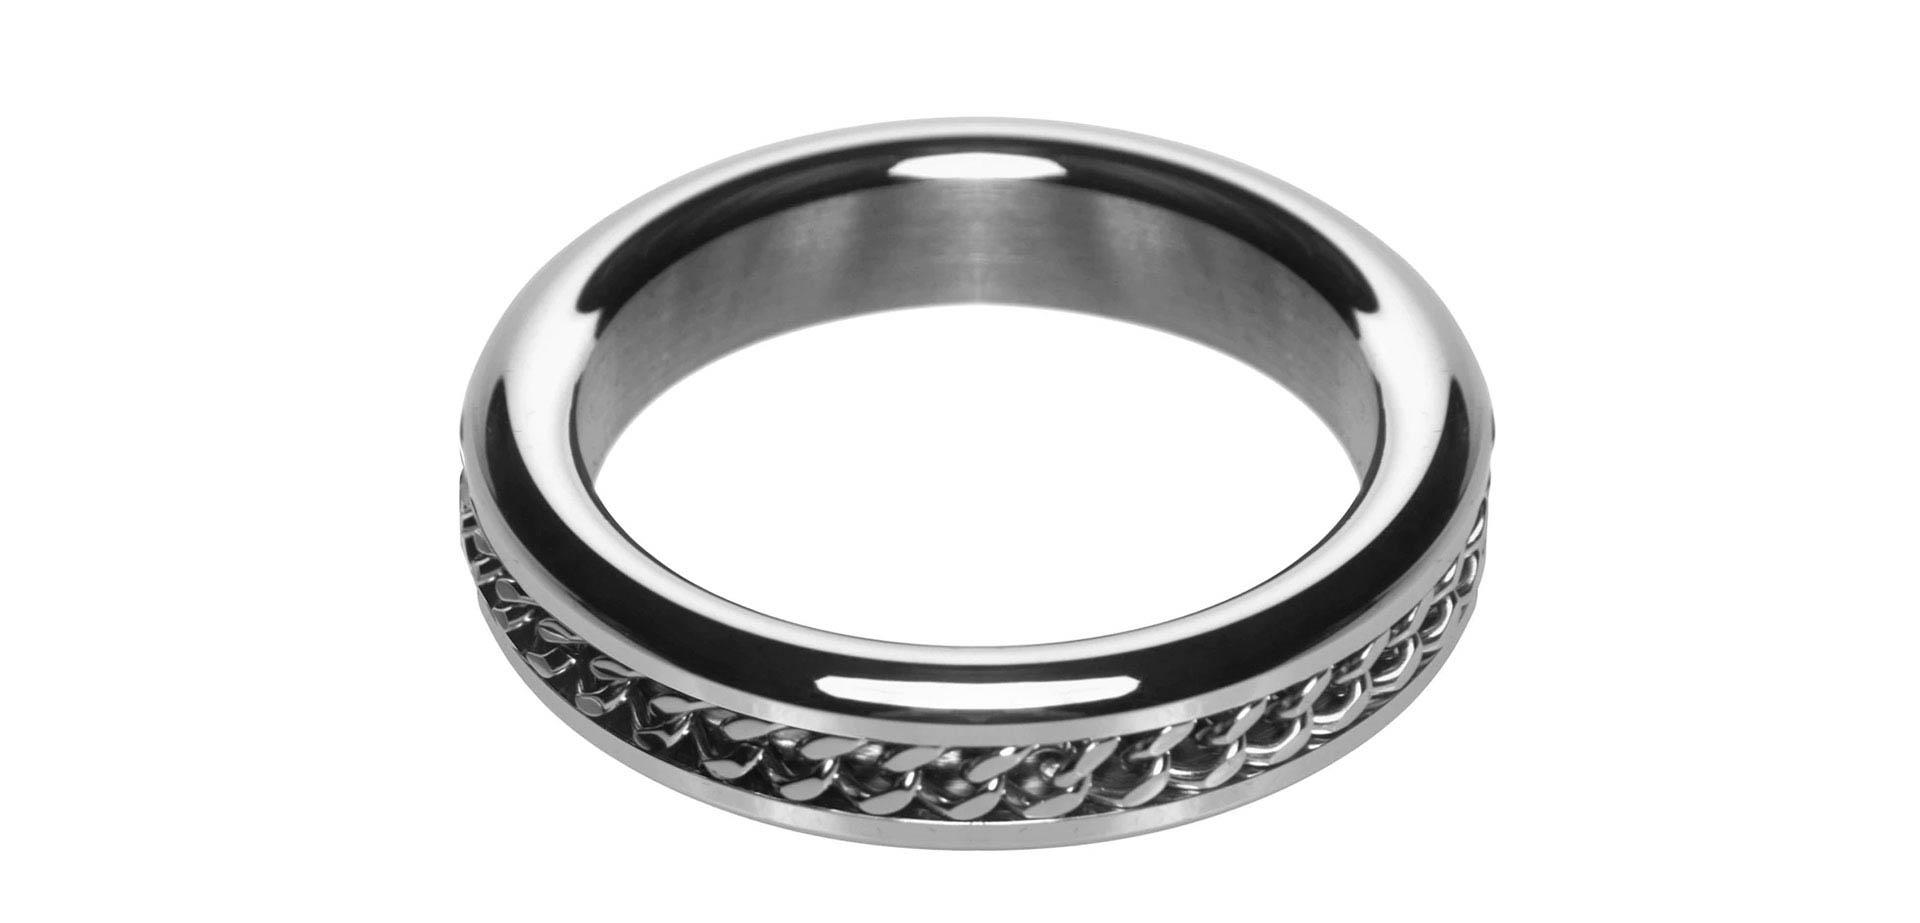 Metal Cock Ring with Chain Inlay.